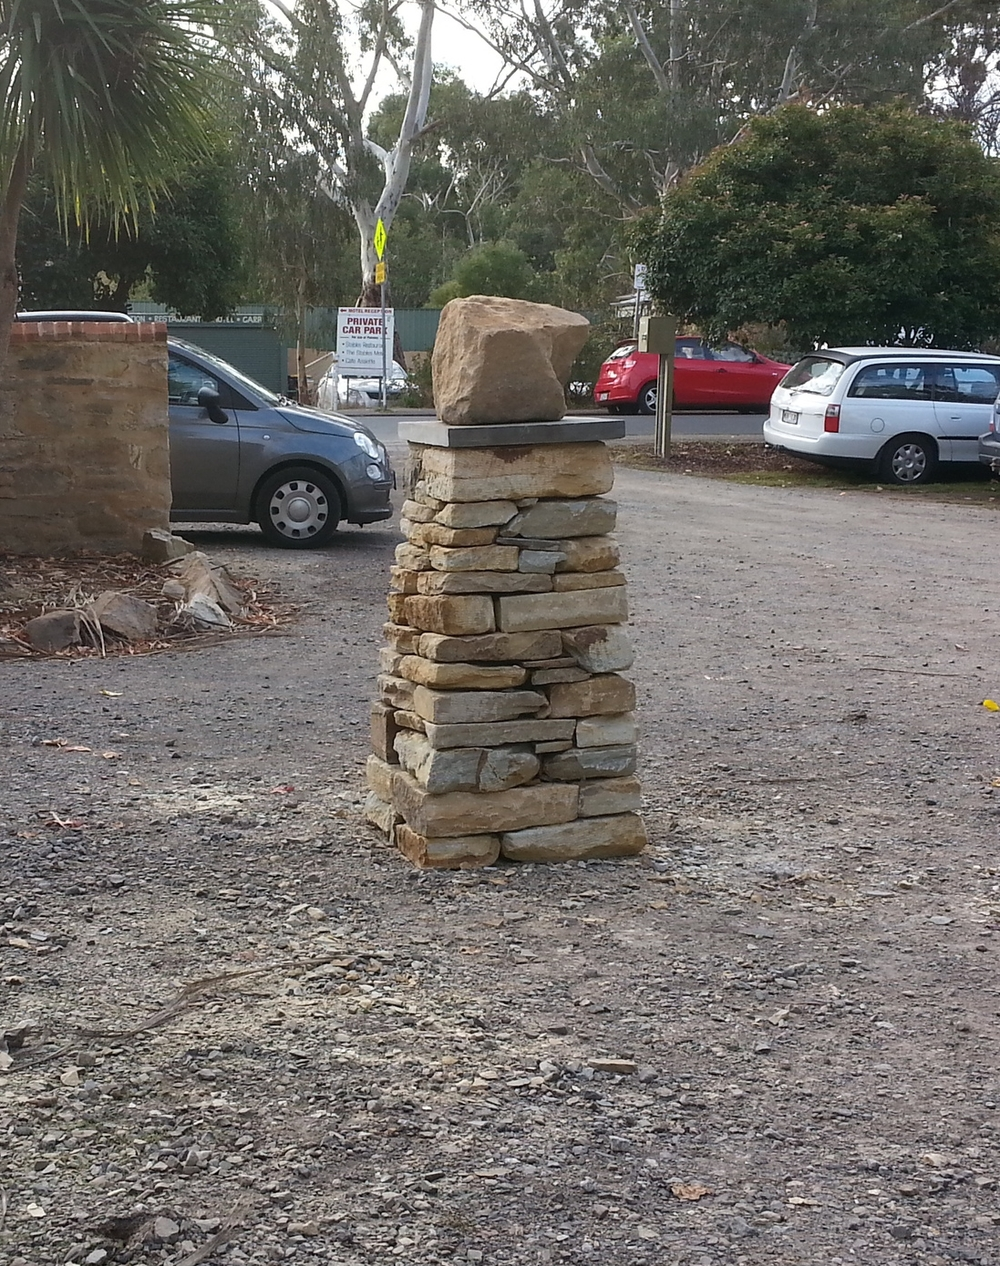 Dry stone cairn. Hahndorf, South Australia